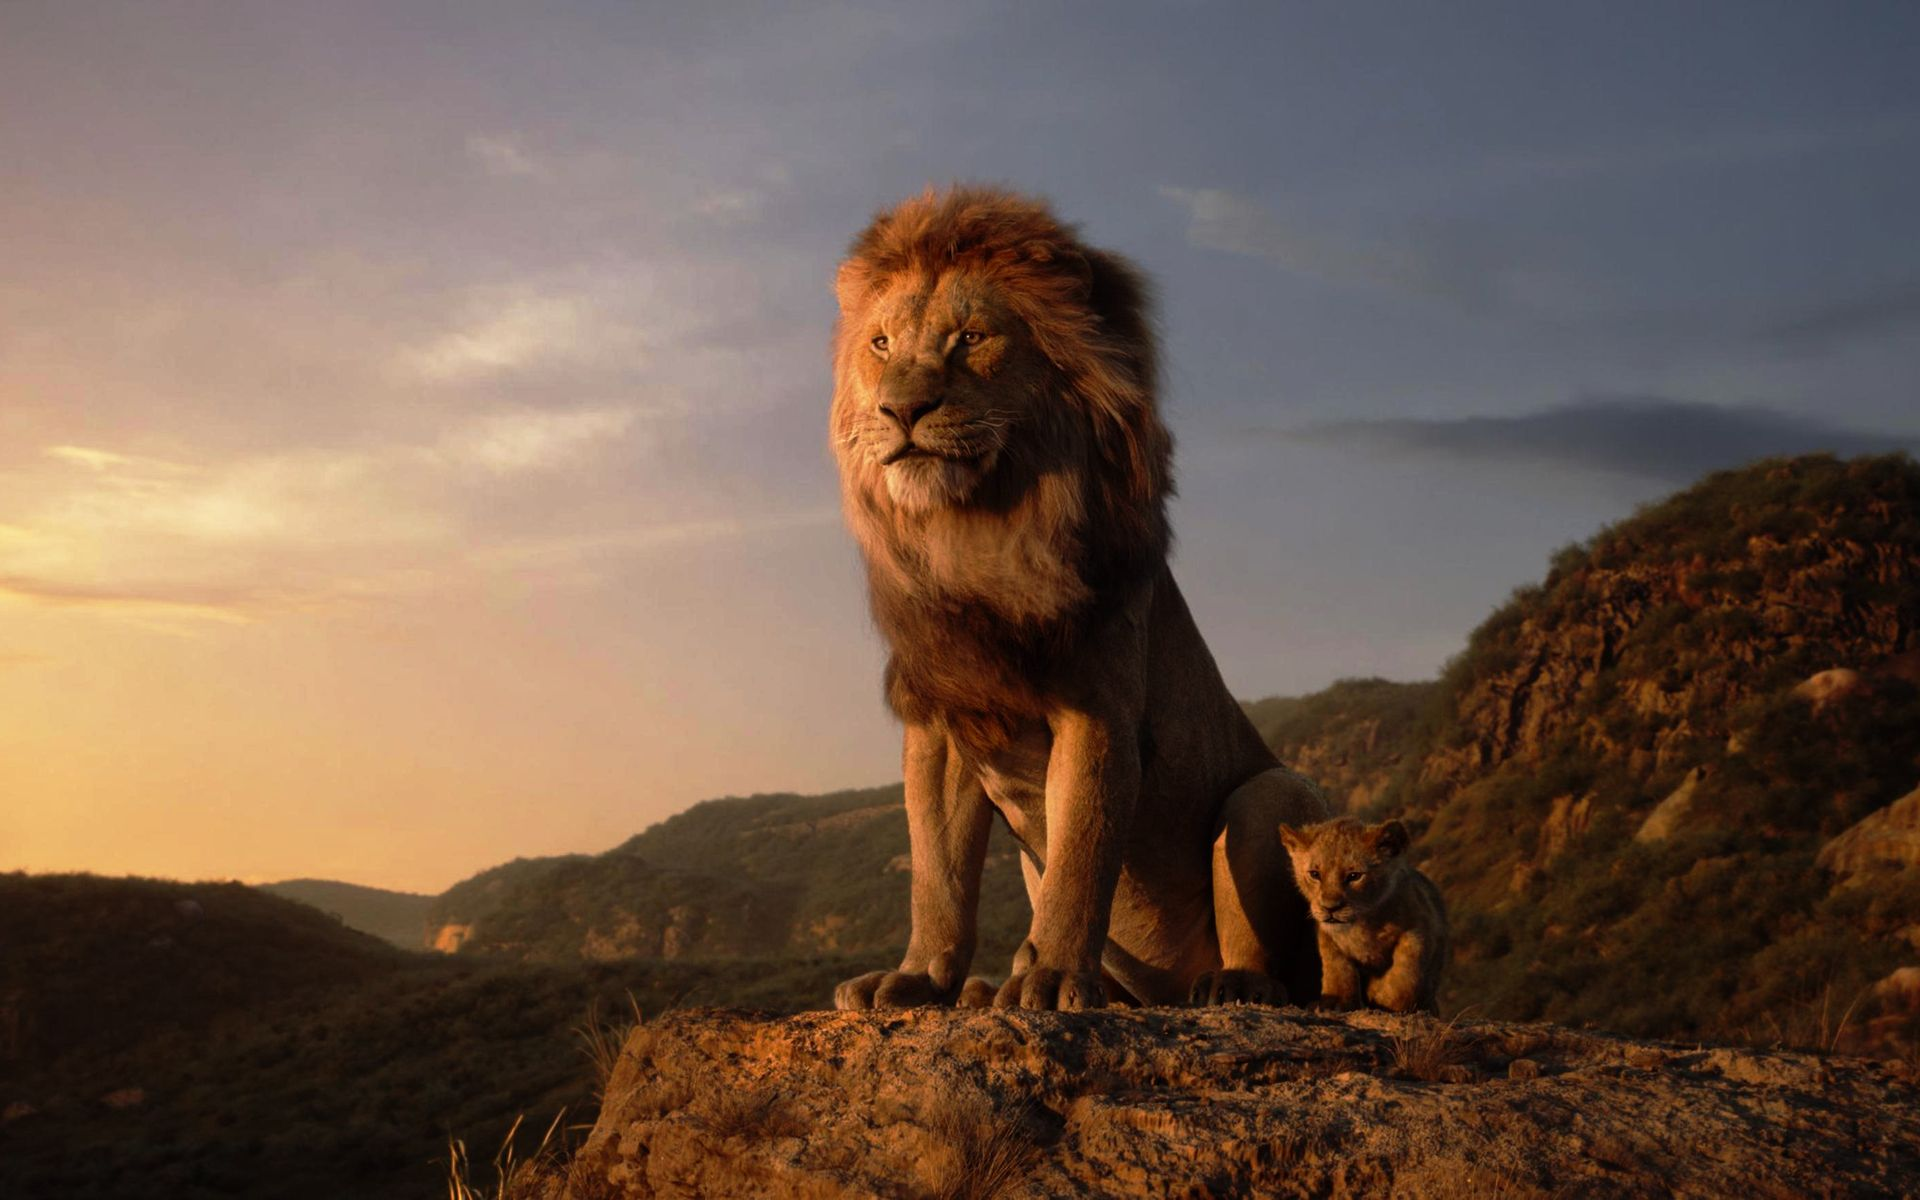 The Lion King 2019 Wallpaper Pc Lion King Movie Lion King Remake Lion King Tickets